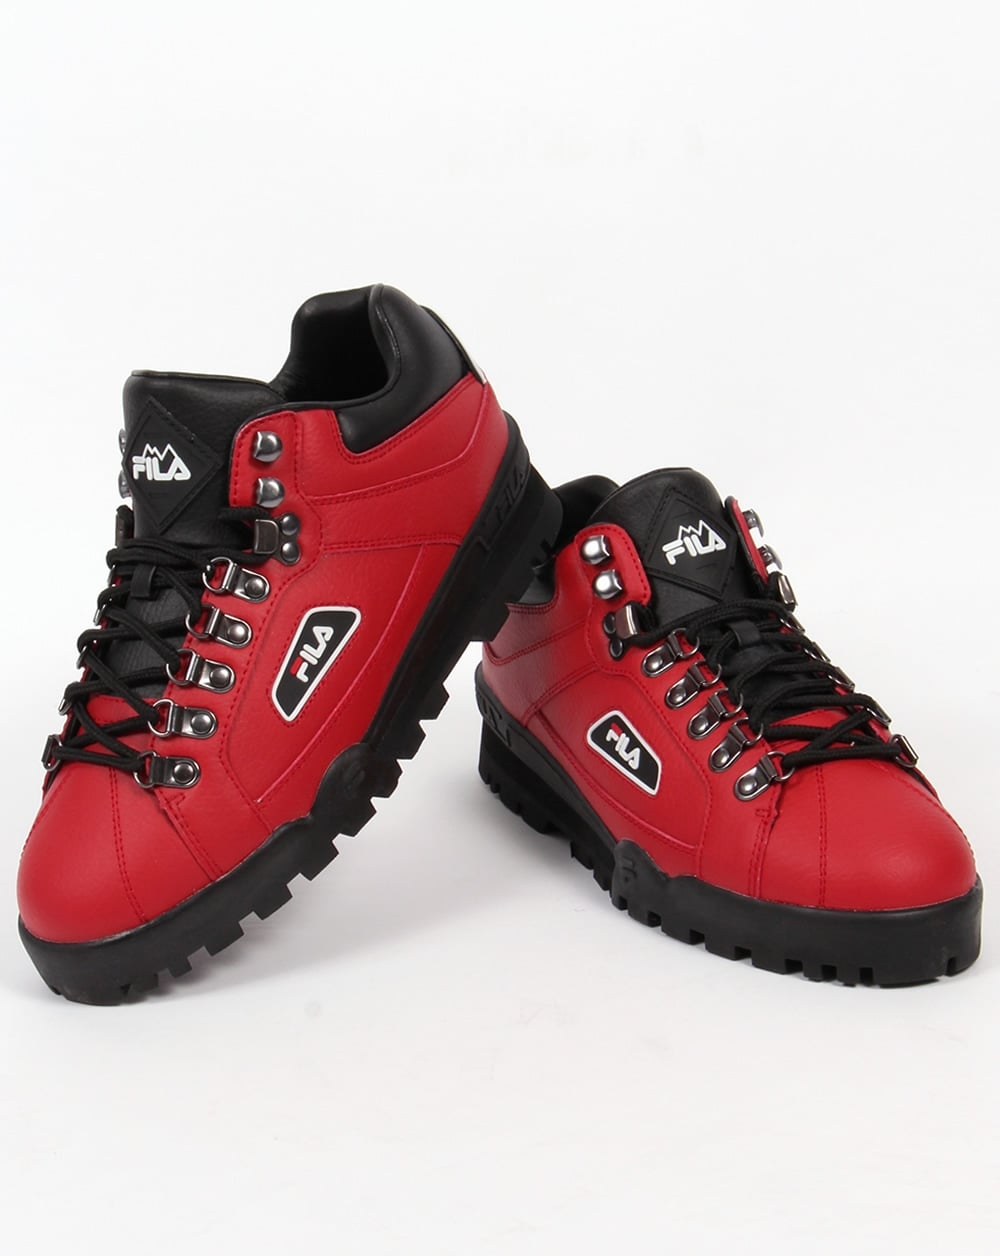 red suede fila boots Shop Clothing